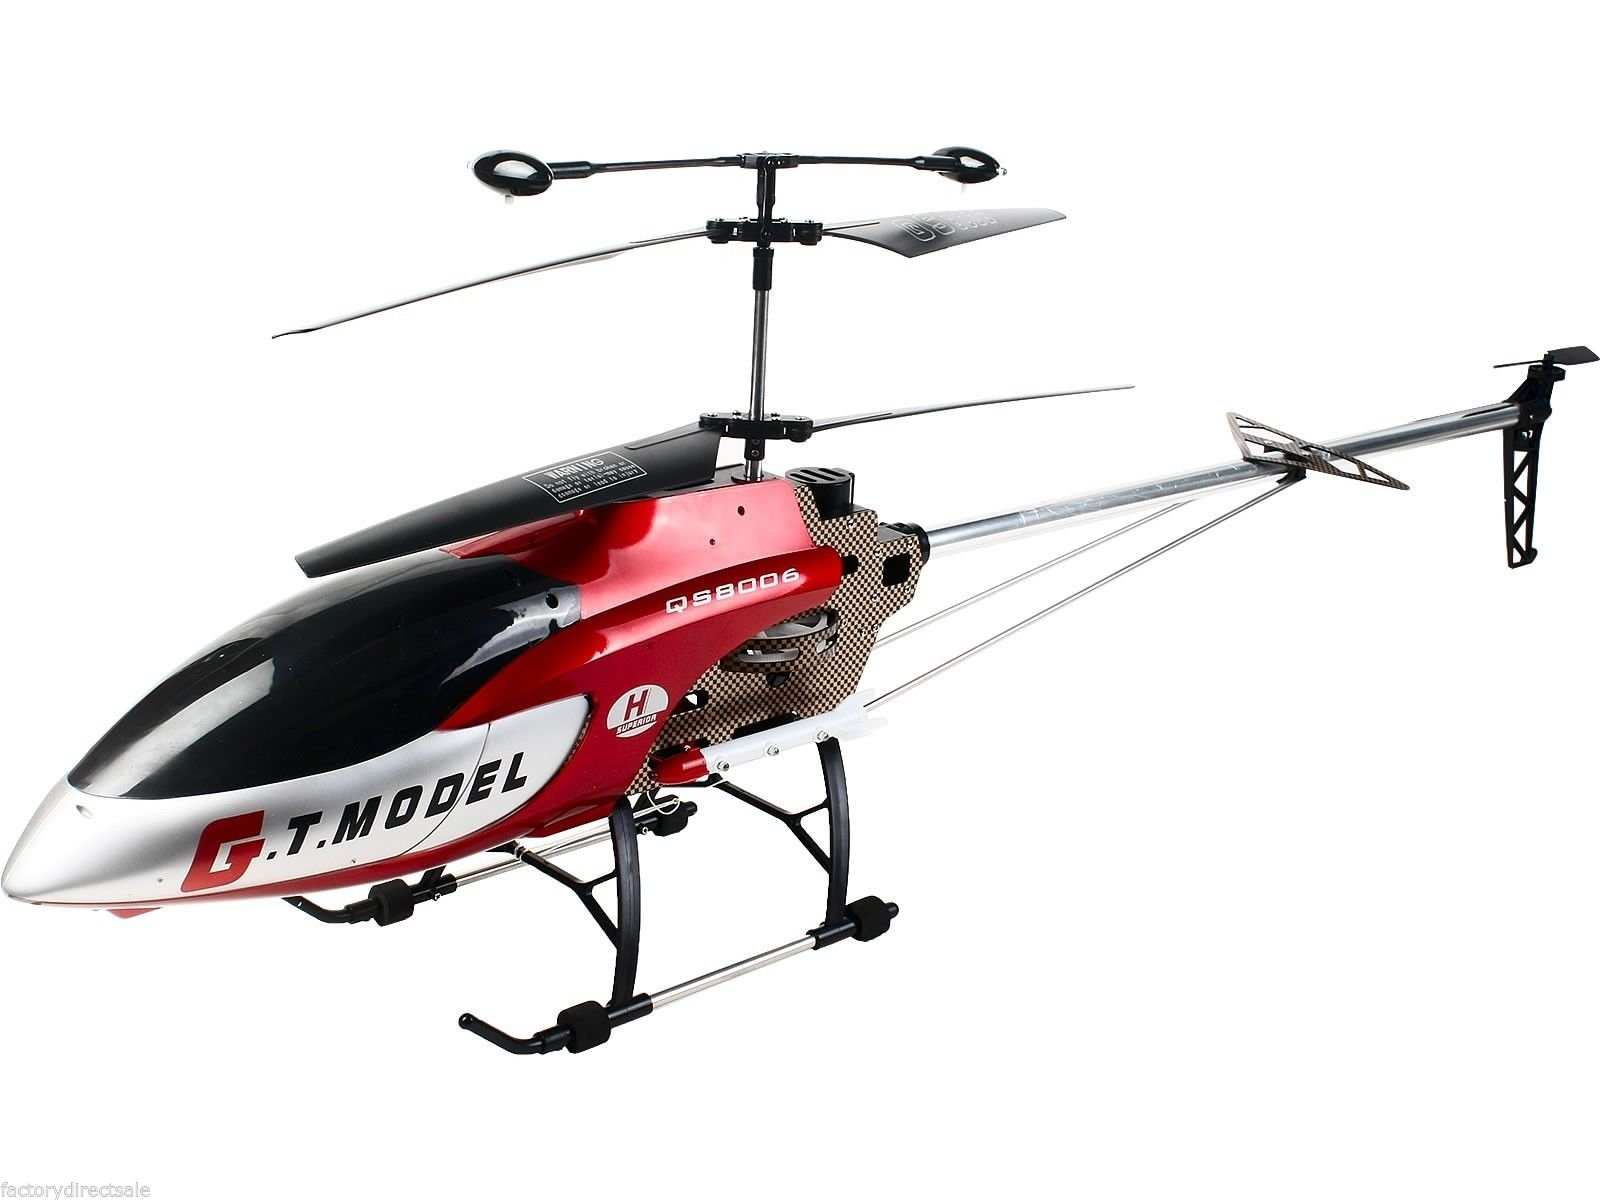 Sawan Shop 53 Inch Extra Large GT QS8006 2 Speed 3.5 Ch RC Helicopter Builtin GYRO Red